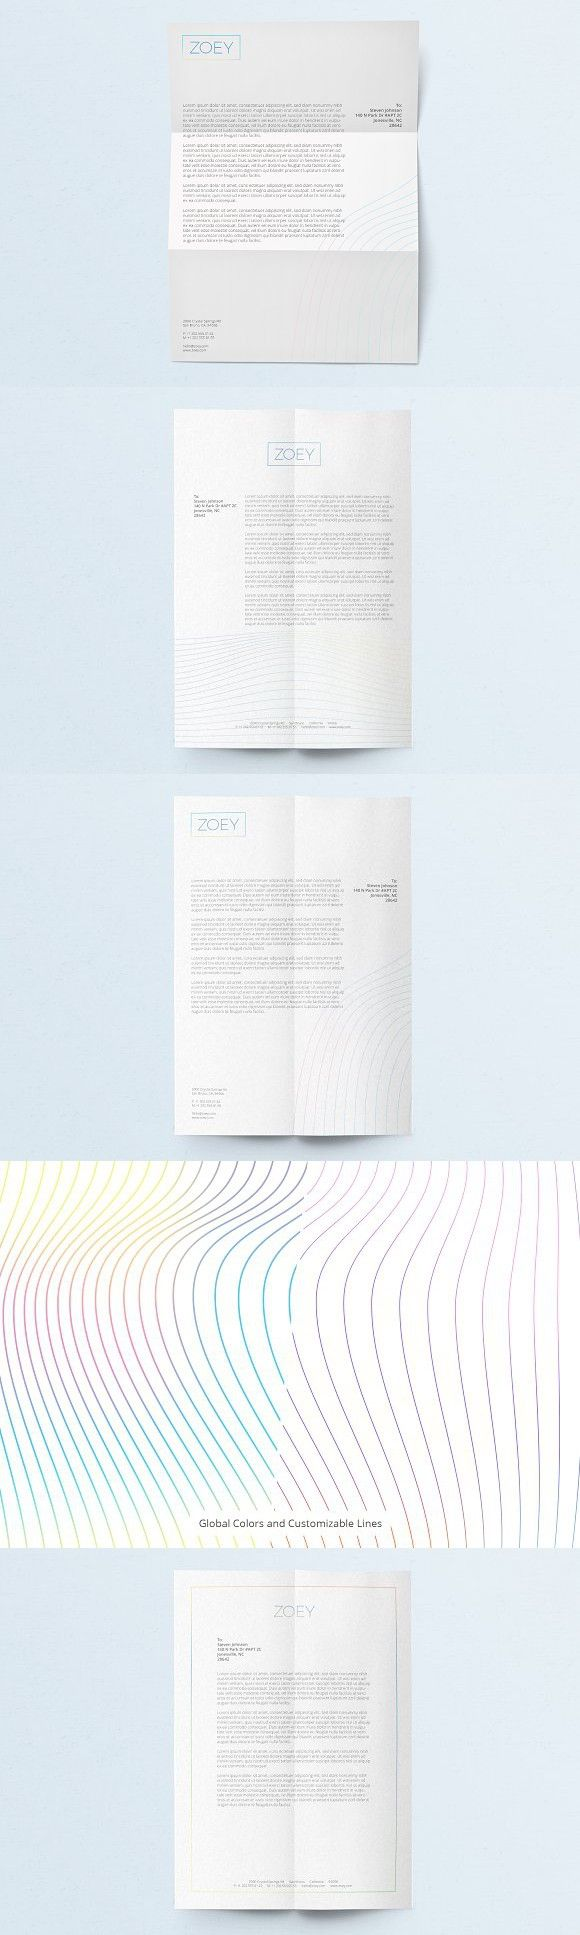 ZOEY Letterhead Template | Word + AI. Stationery Templates